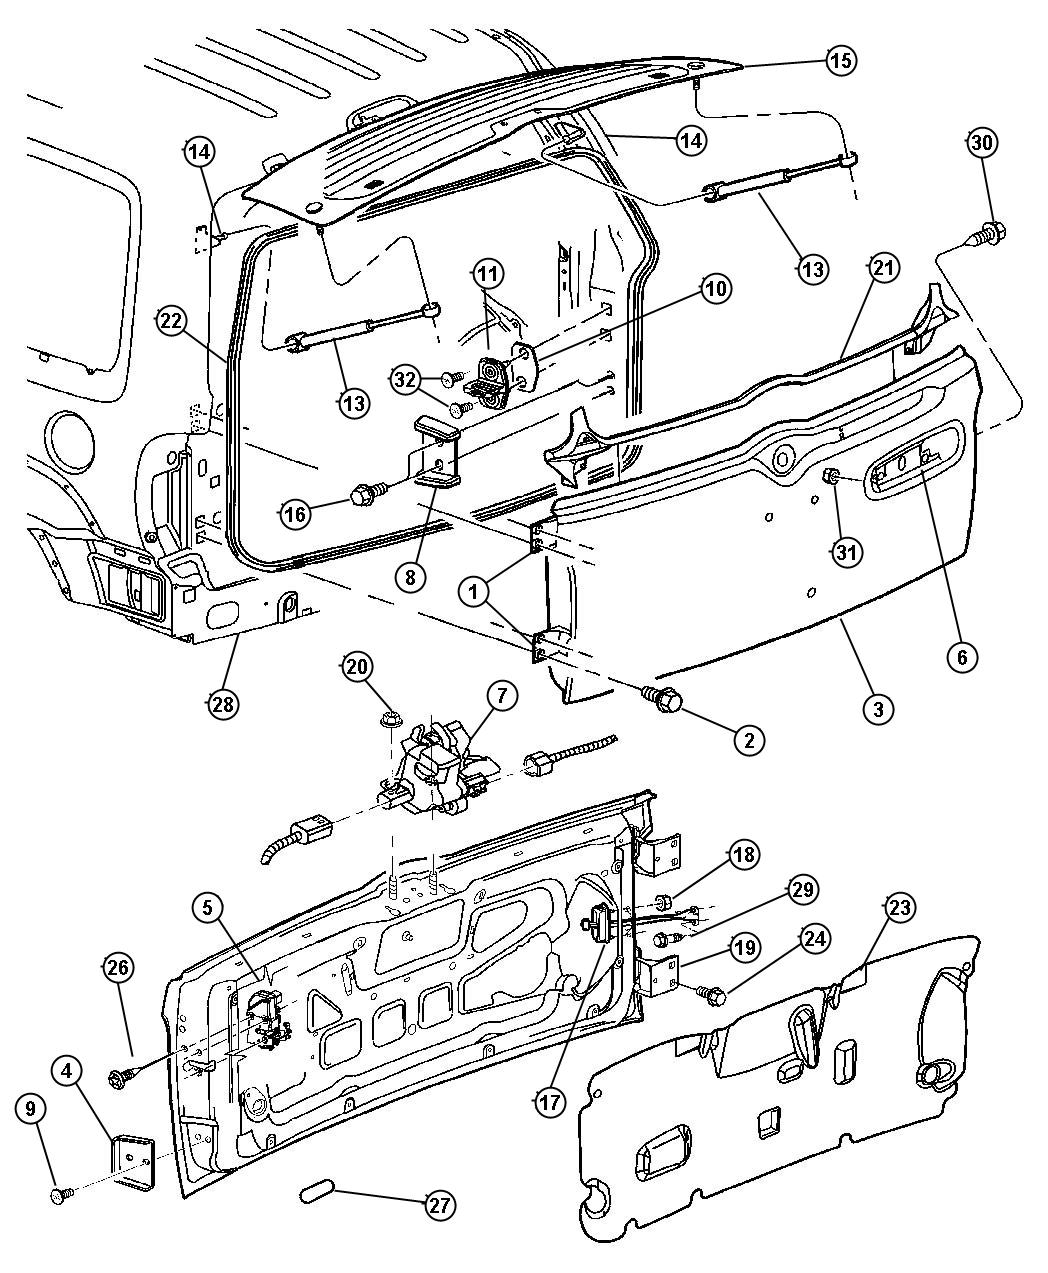 Jeep liberty swing gate latch and hinges